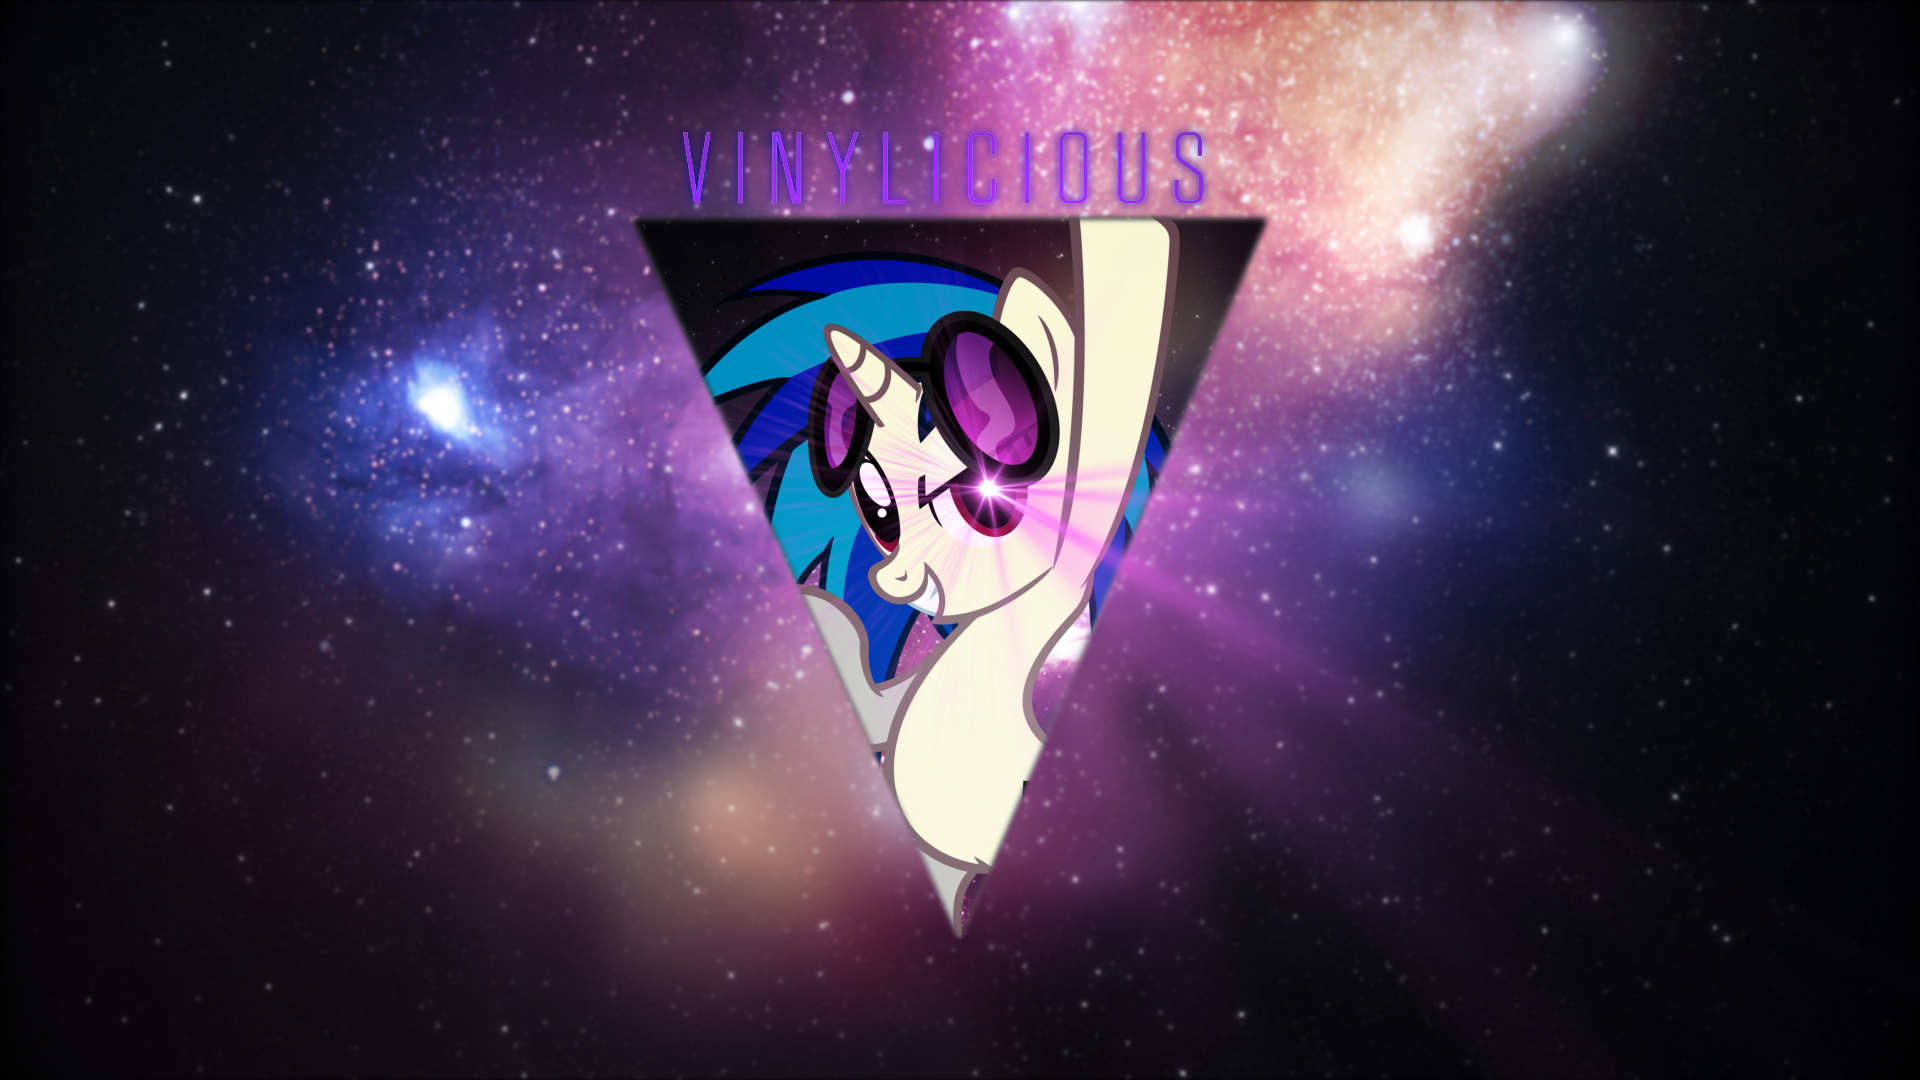 Vinyl Scratch Hipster Background